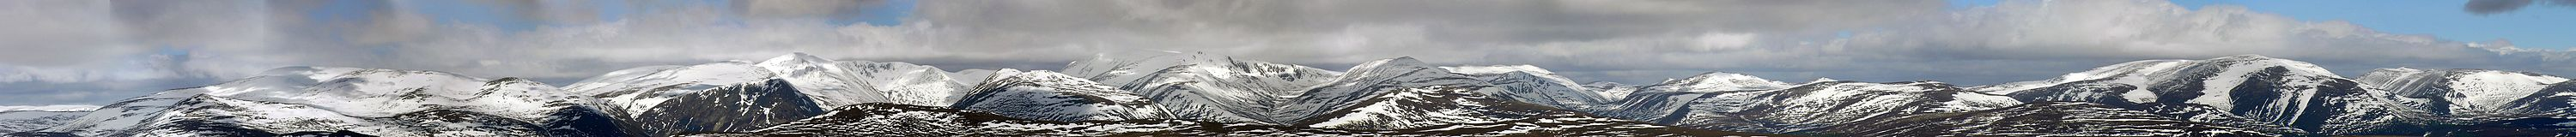 Cairngorms-panorama.jpg